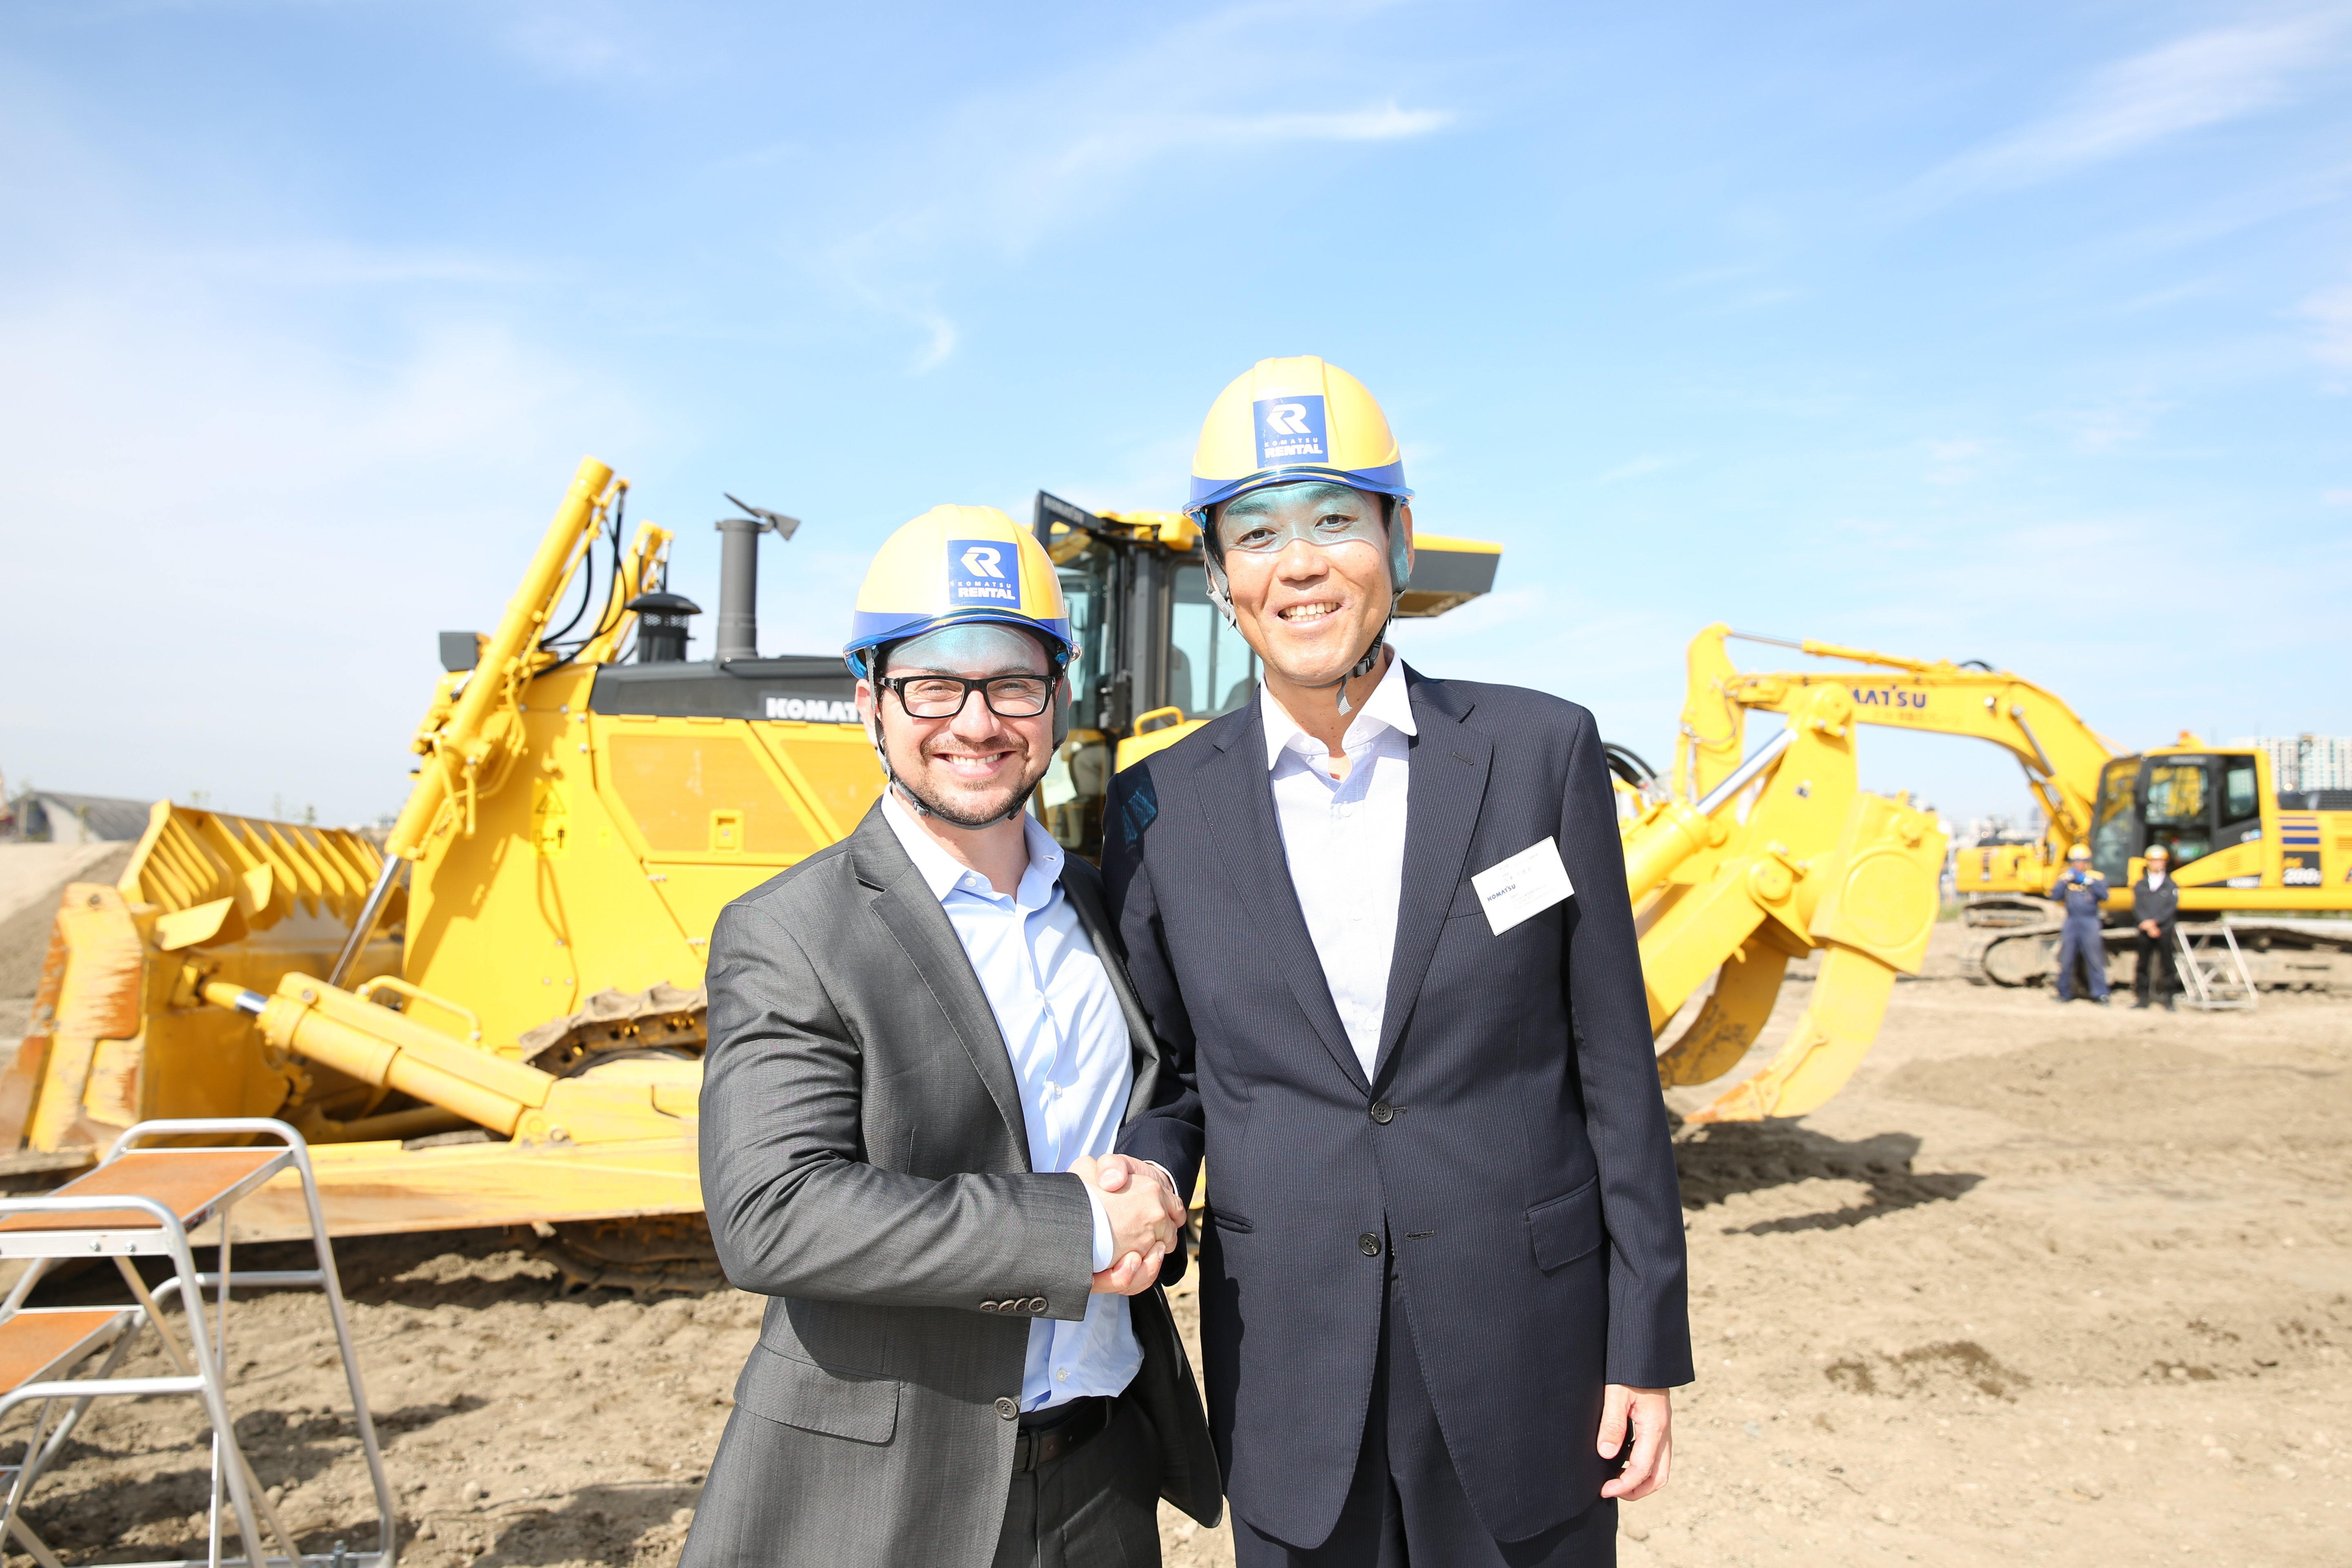 Chikashi Shike, President of Komatsu Smart Construction with Skycatch CEO, Christian Sanz at job-site in Japan